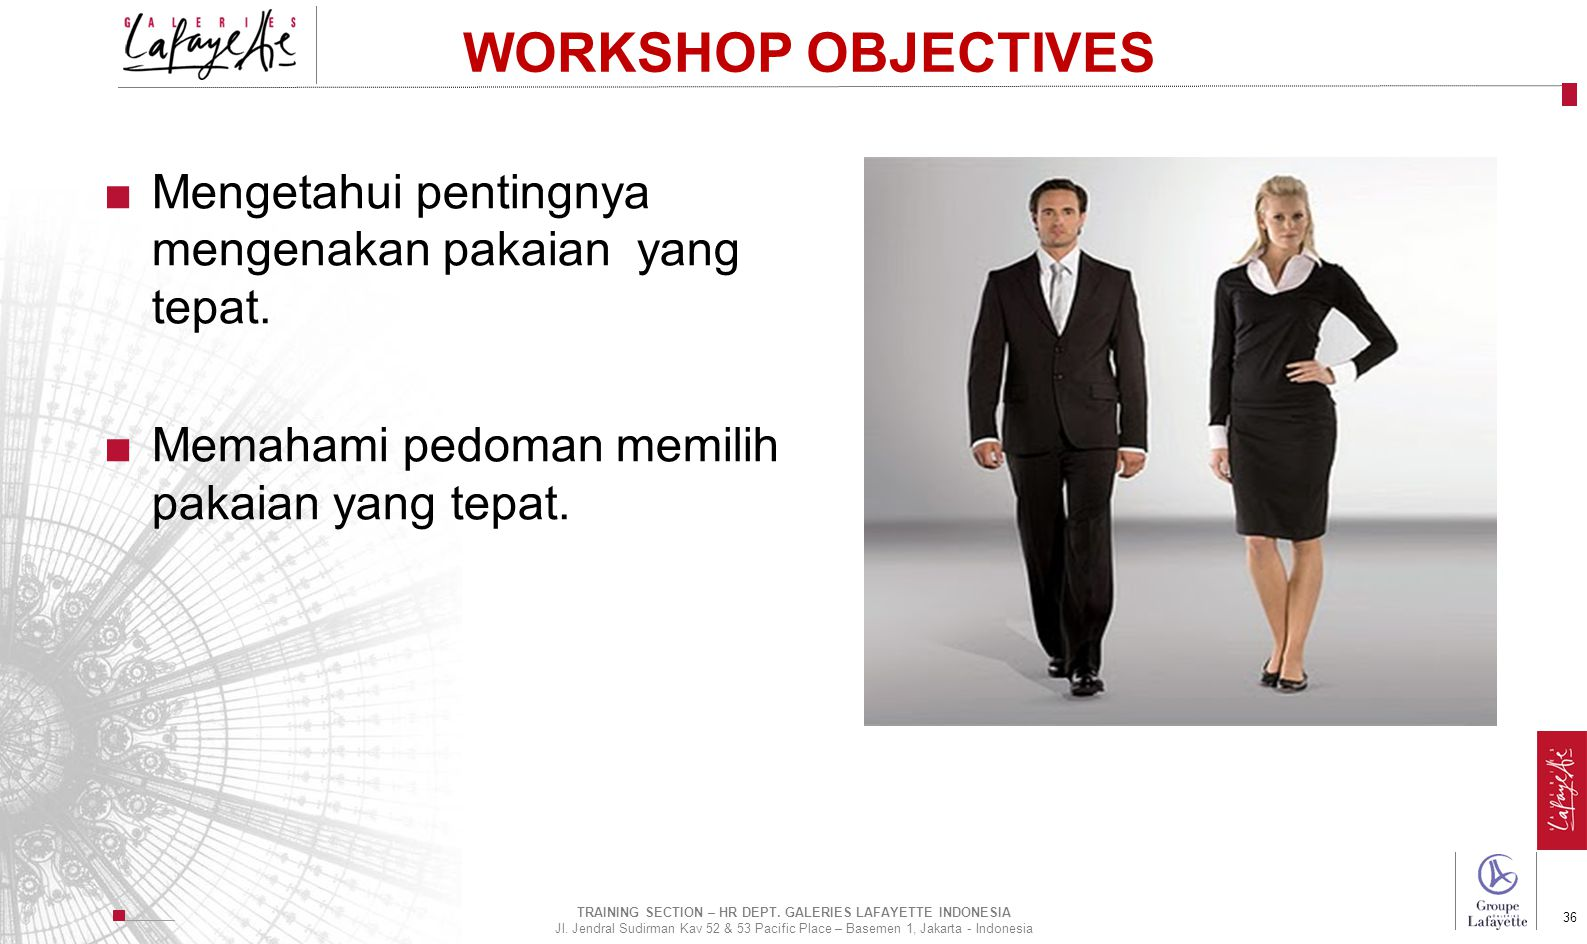 Direction de l'International 36 WORKSHOP OBJECTIVES ■Mengetahui pentingnya mengenakan pakaian yang tepat. ■Memahami pedoman memilih pakaian yang tepat